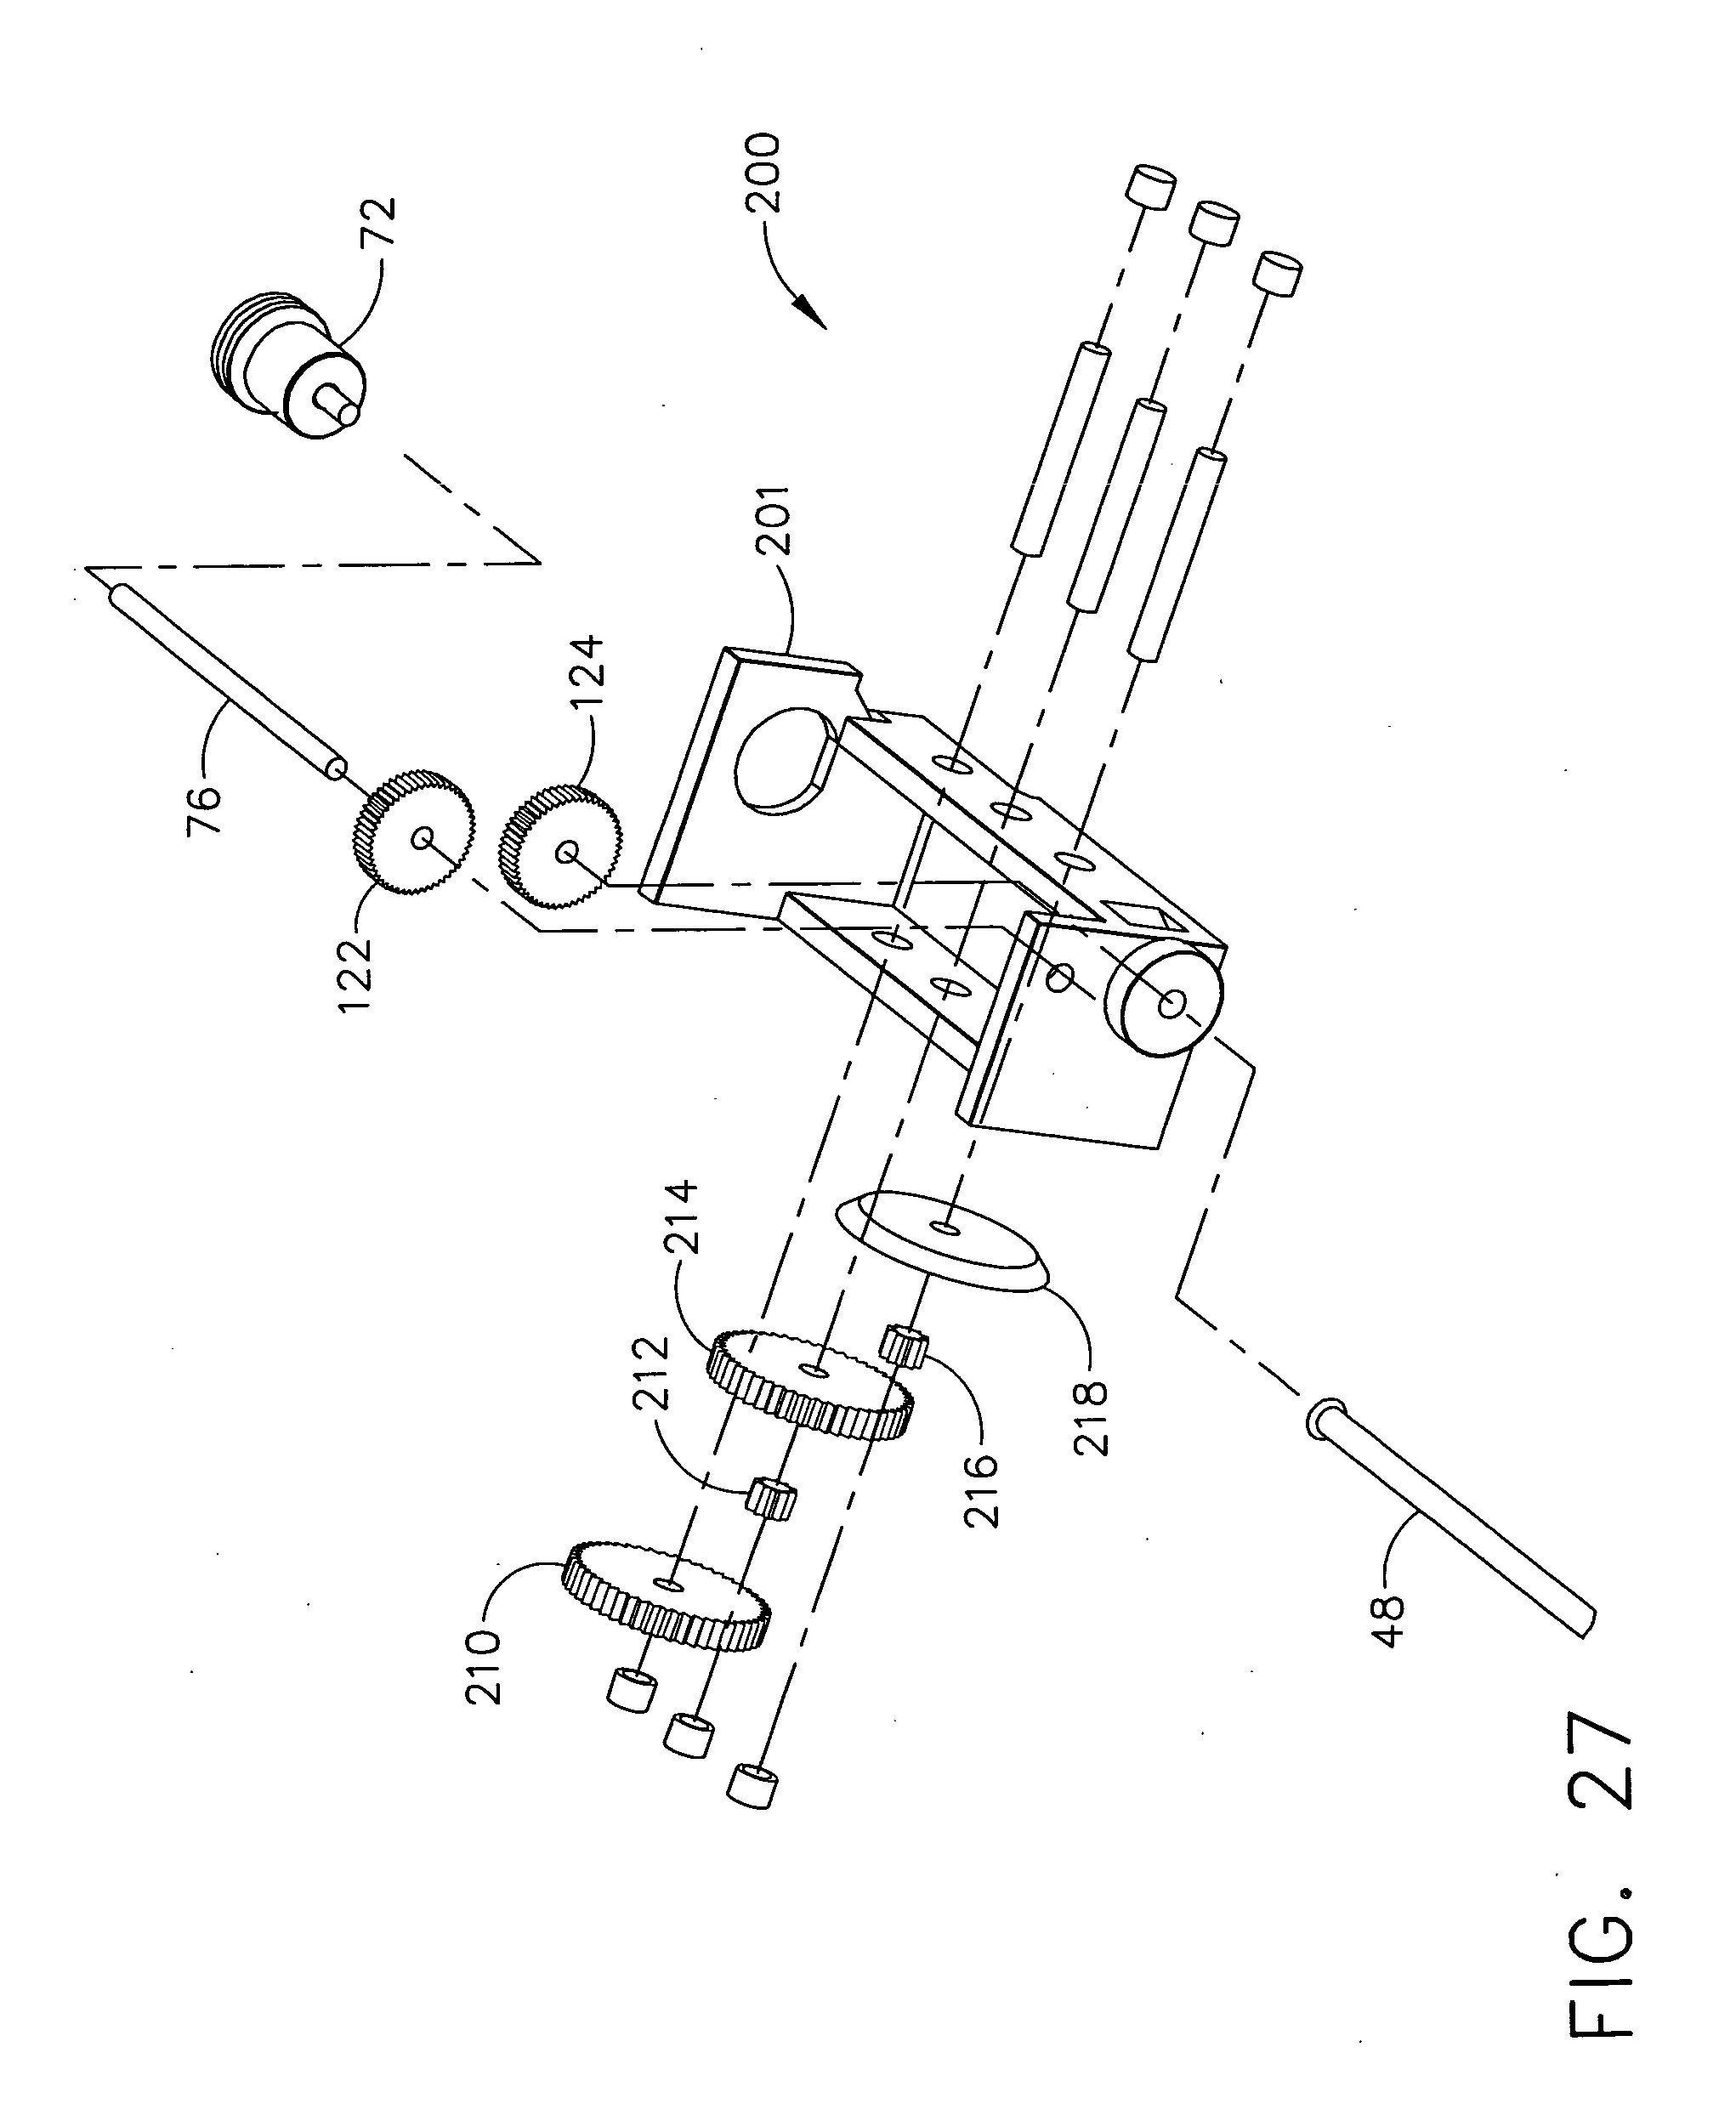 Us20070175964a1 surgical instrument having recording capabilities patents